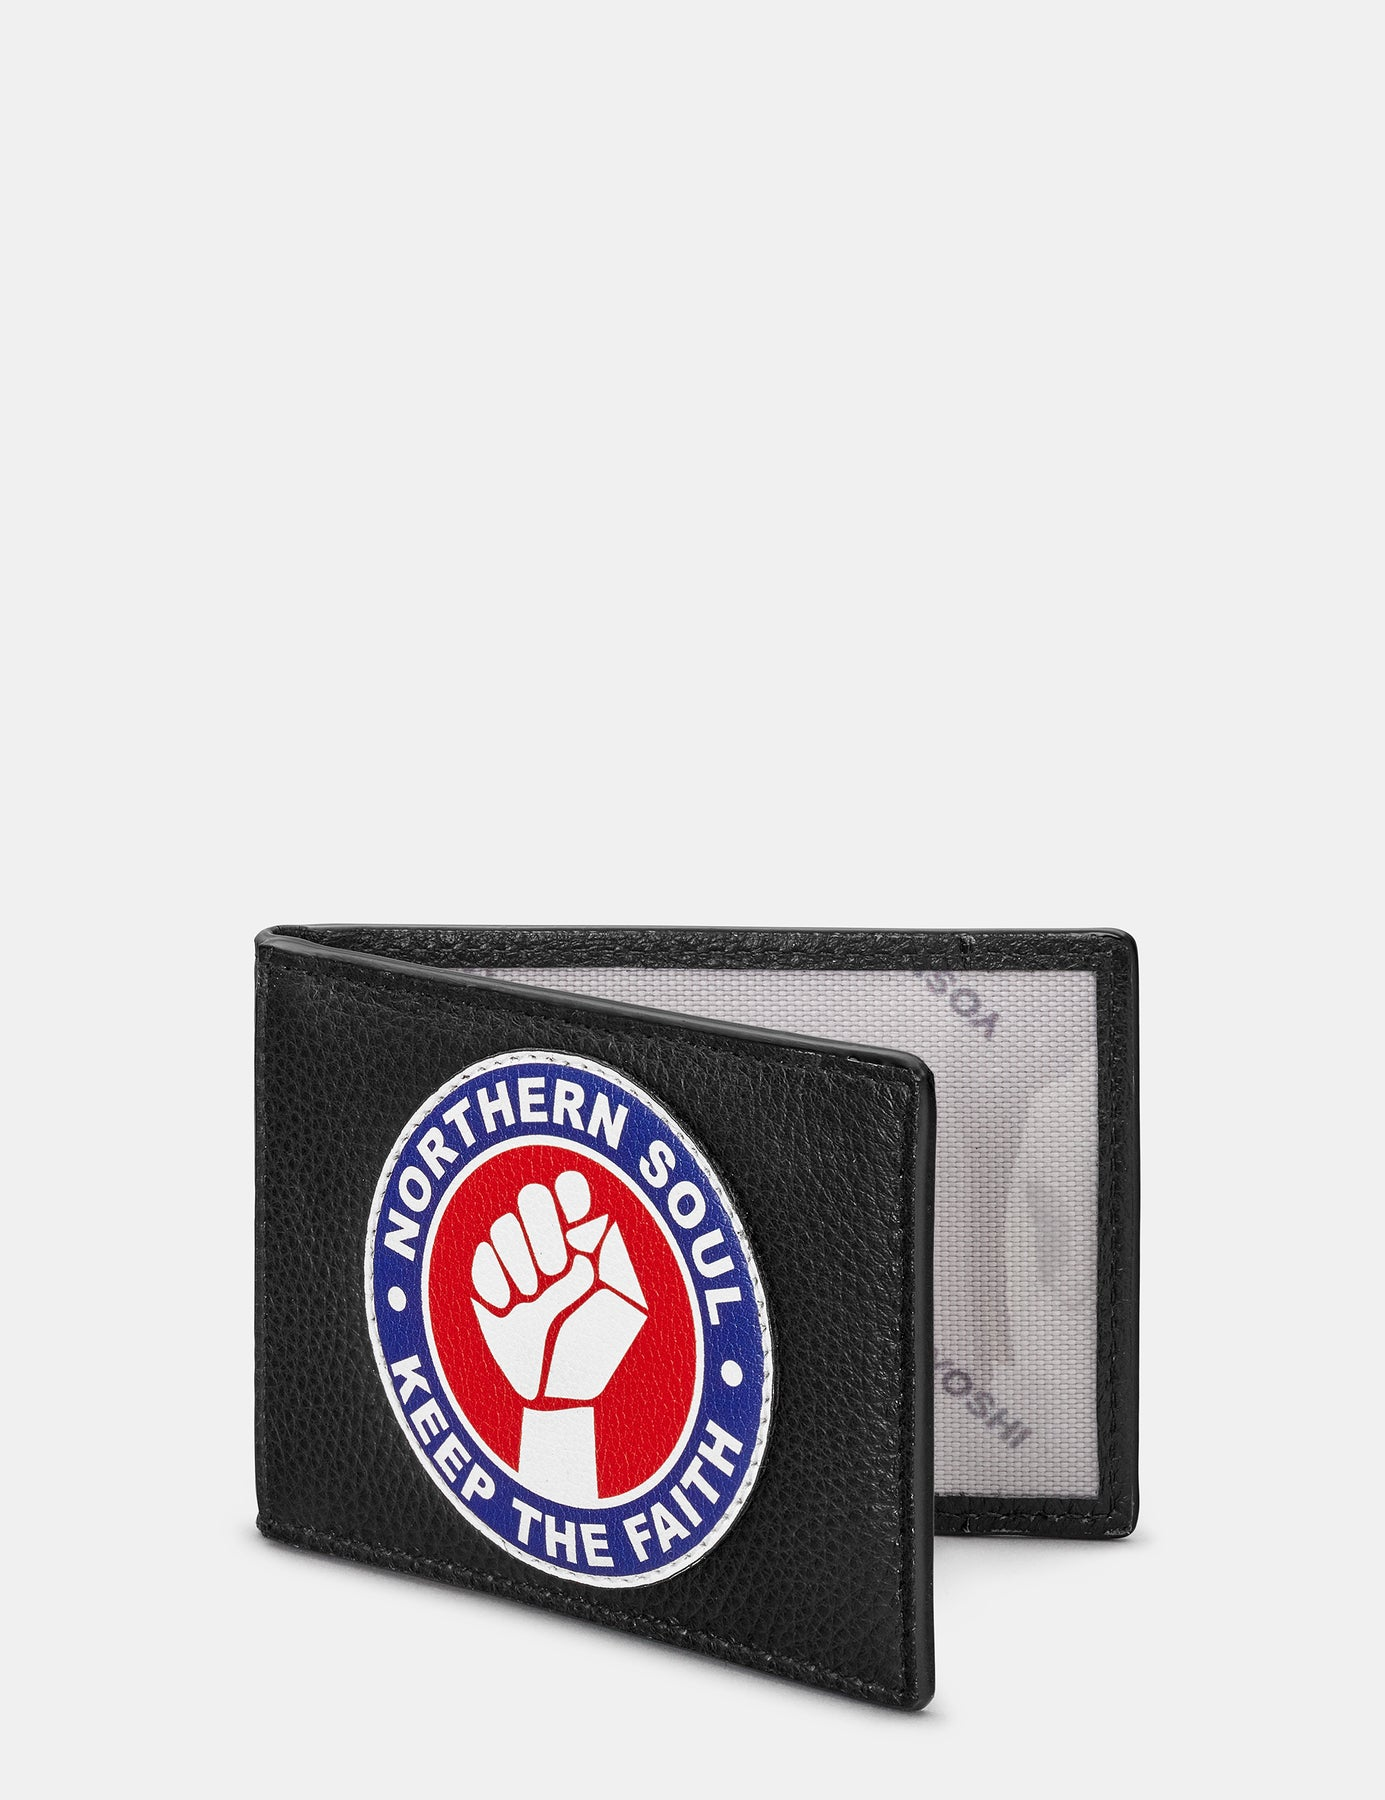 Northern Soul Keep The Faith Red Bifold Wallet Coin Purse Zipped Wide Card Slot